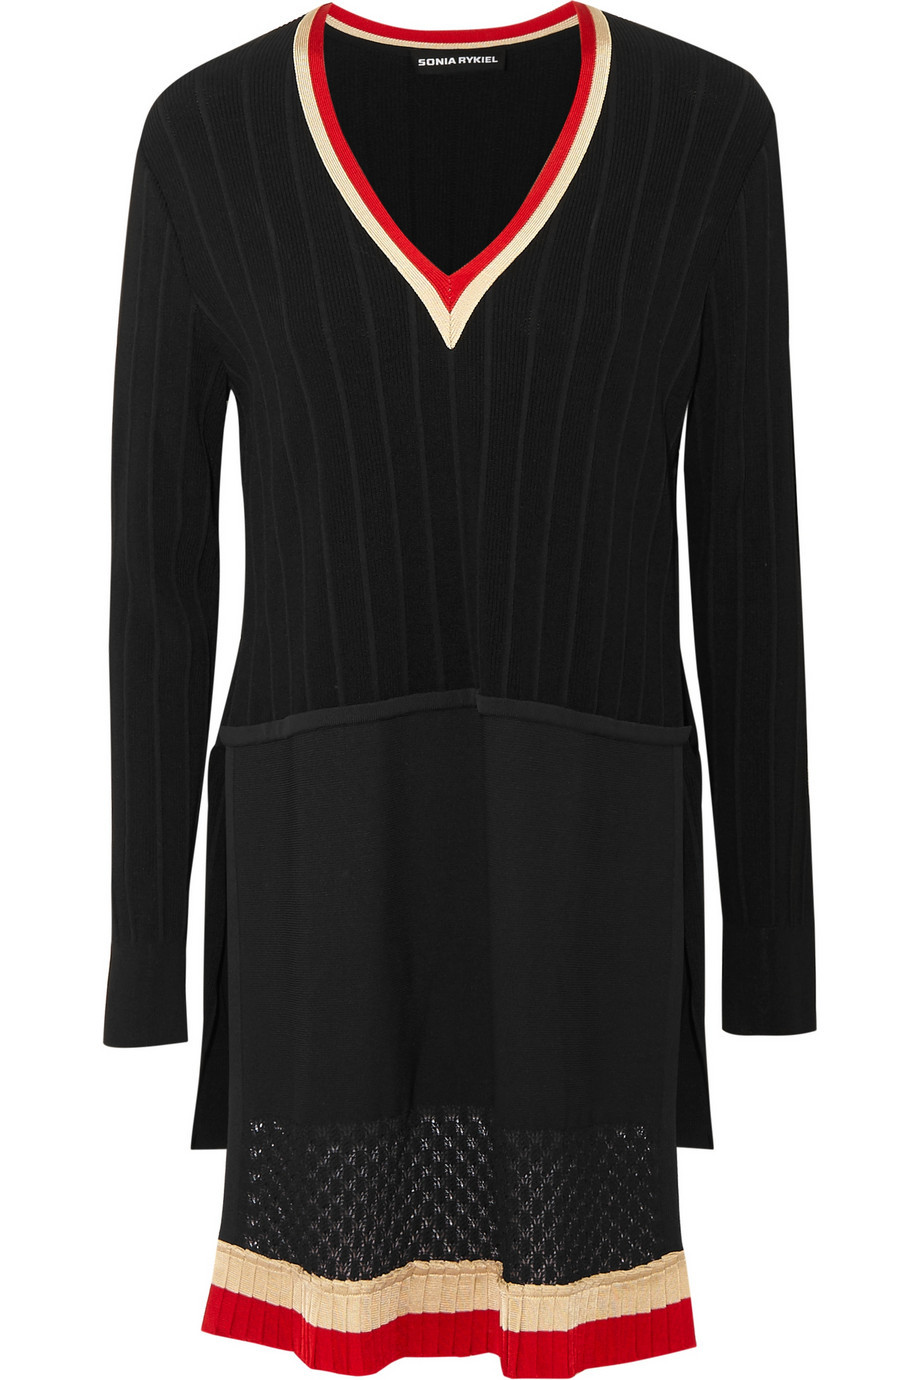 Ribbed Knit Sweater Tunic Black - neckline: low v-neck; pattern: plain; style: tunic; predominant colour: black; occasions: casual, creative work; fit: standard fit; length: mid thigh; hip detail: contrast fabric/print detail at hip; sleeve length: long sleeve; sleeve style: standard; texture group: knits/crochet; pattern type: knitted - fine stitch; fibres: viscose/rayon - mix; multicoloured: multicoloured; season: a/w 2015